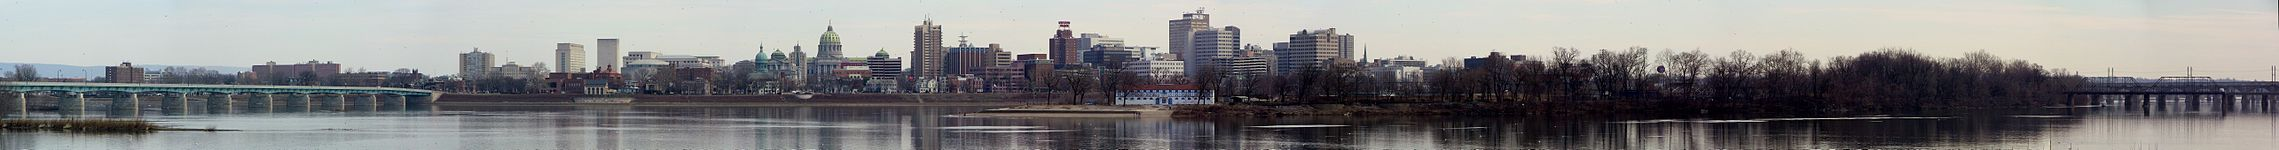 A city skyline, including the Pennsylvania State Capitol, beyond a river with bridges extending across the river on both sides of the photograph. An island is prominent in the right mid-ground.